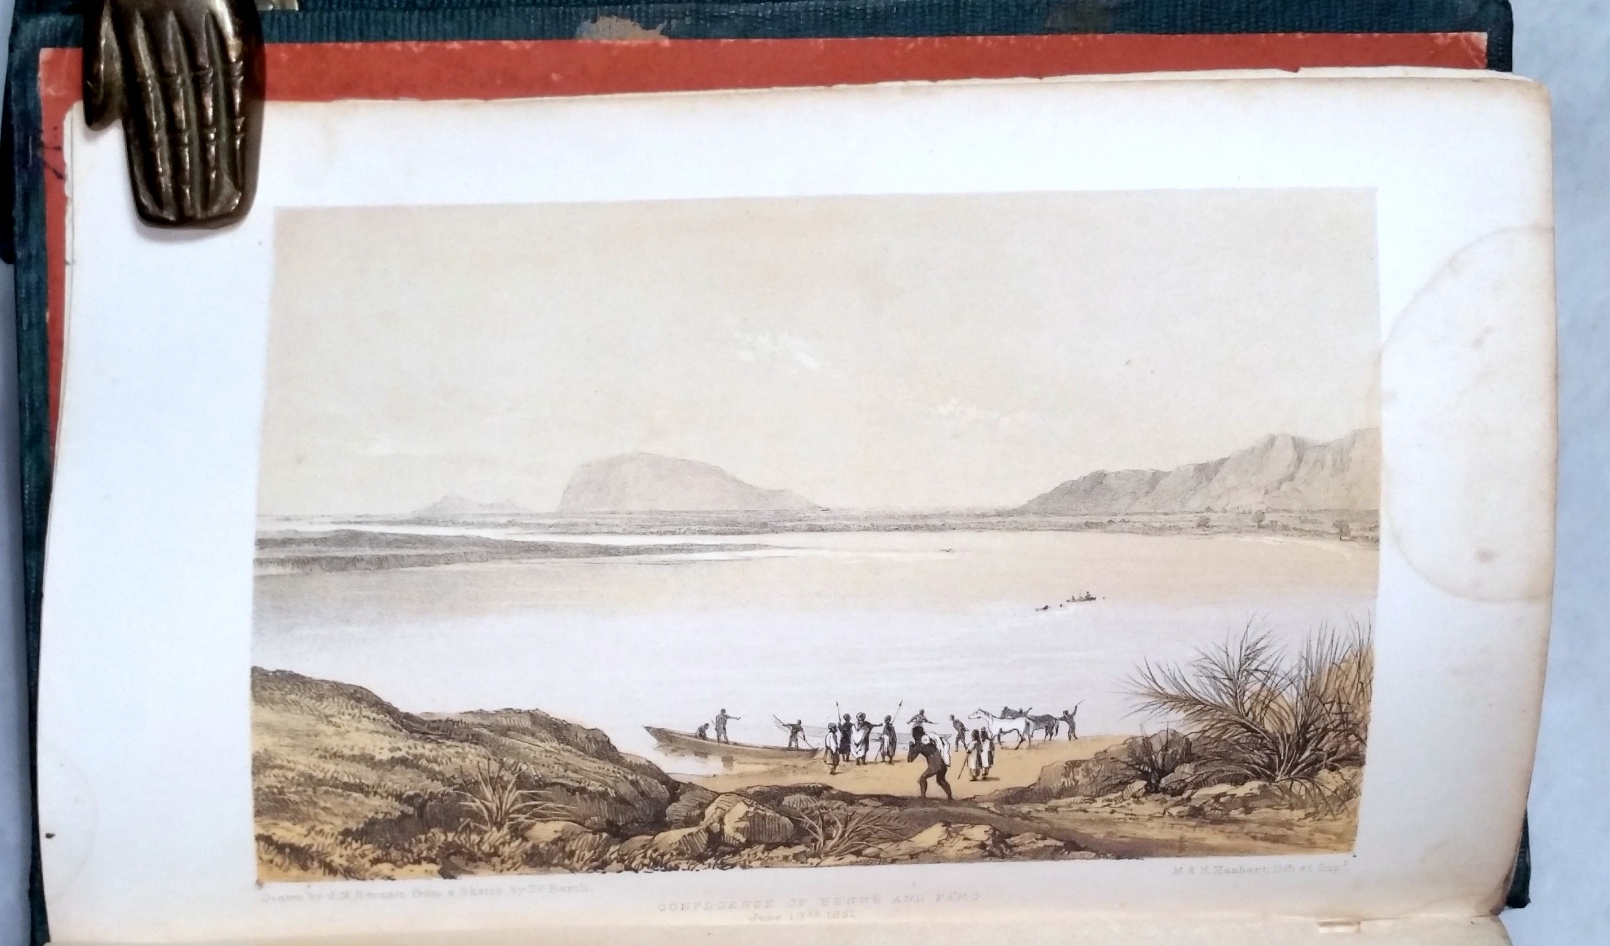 Image for Travels and Discoveries in North and Central Africa:  Being a Journal of an Expedition Undertaken Under the Auspices of H.B.M.'s Government, in the Years 1849-1855 (Five Volumes)